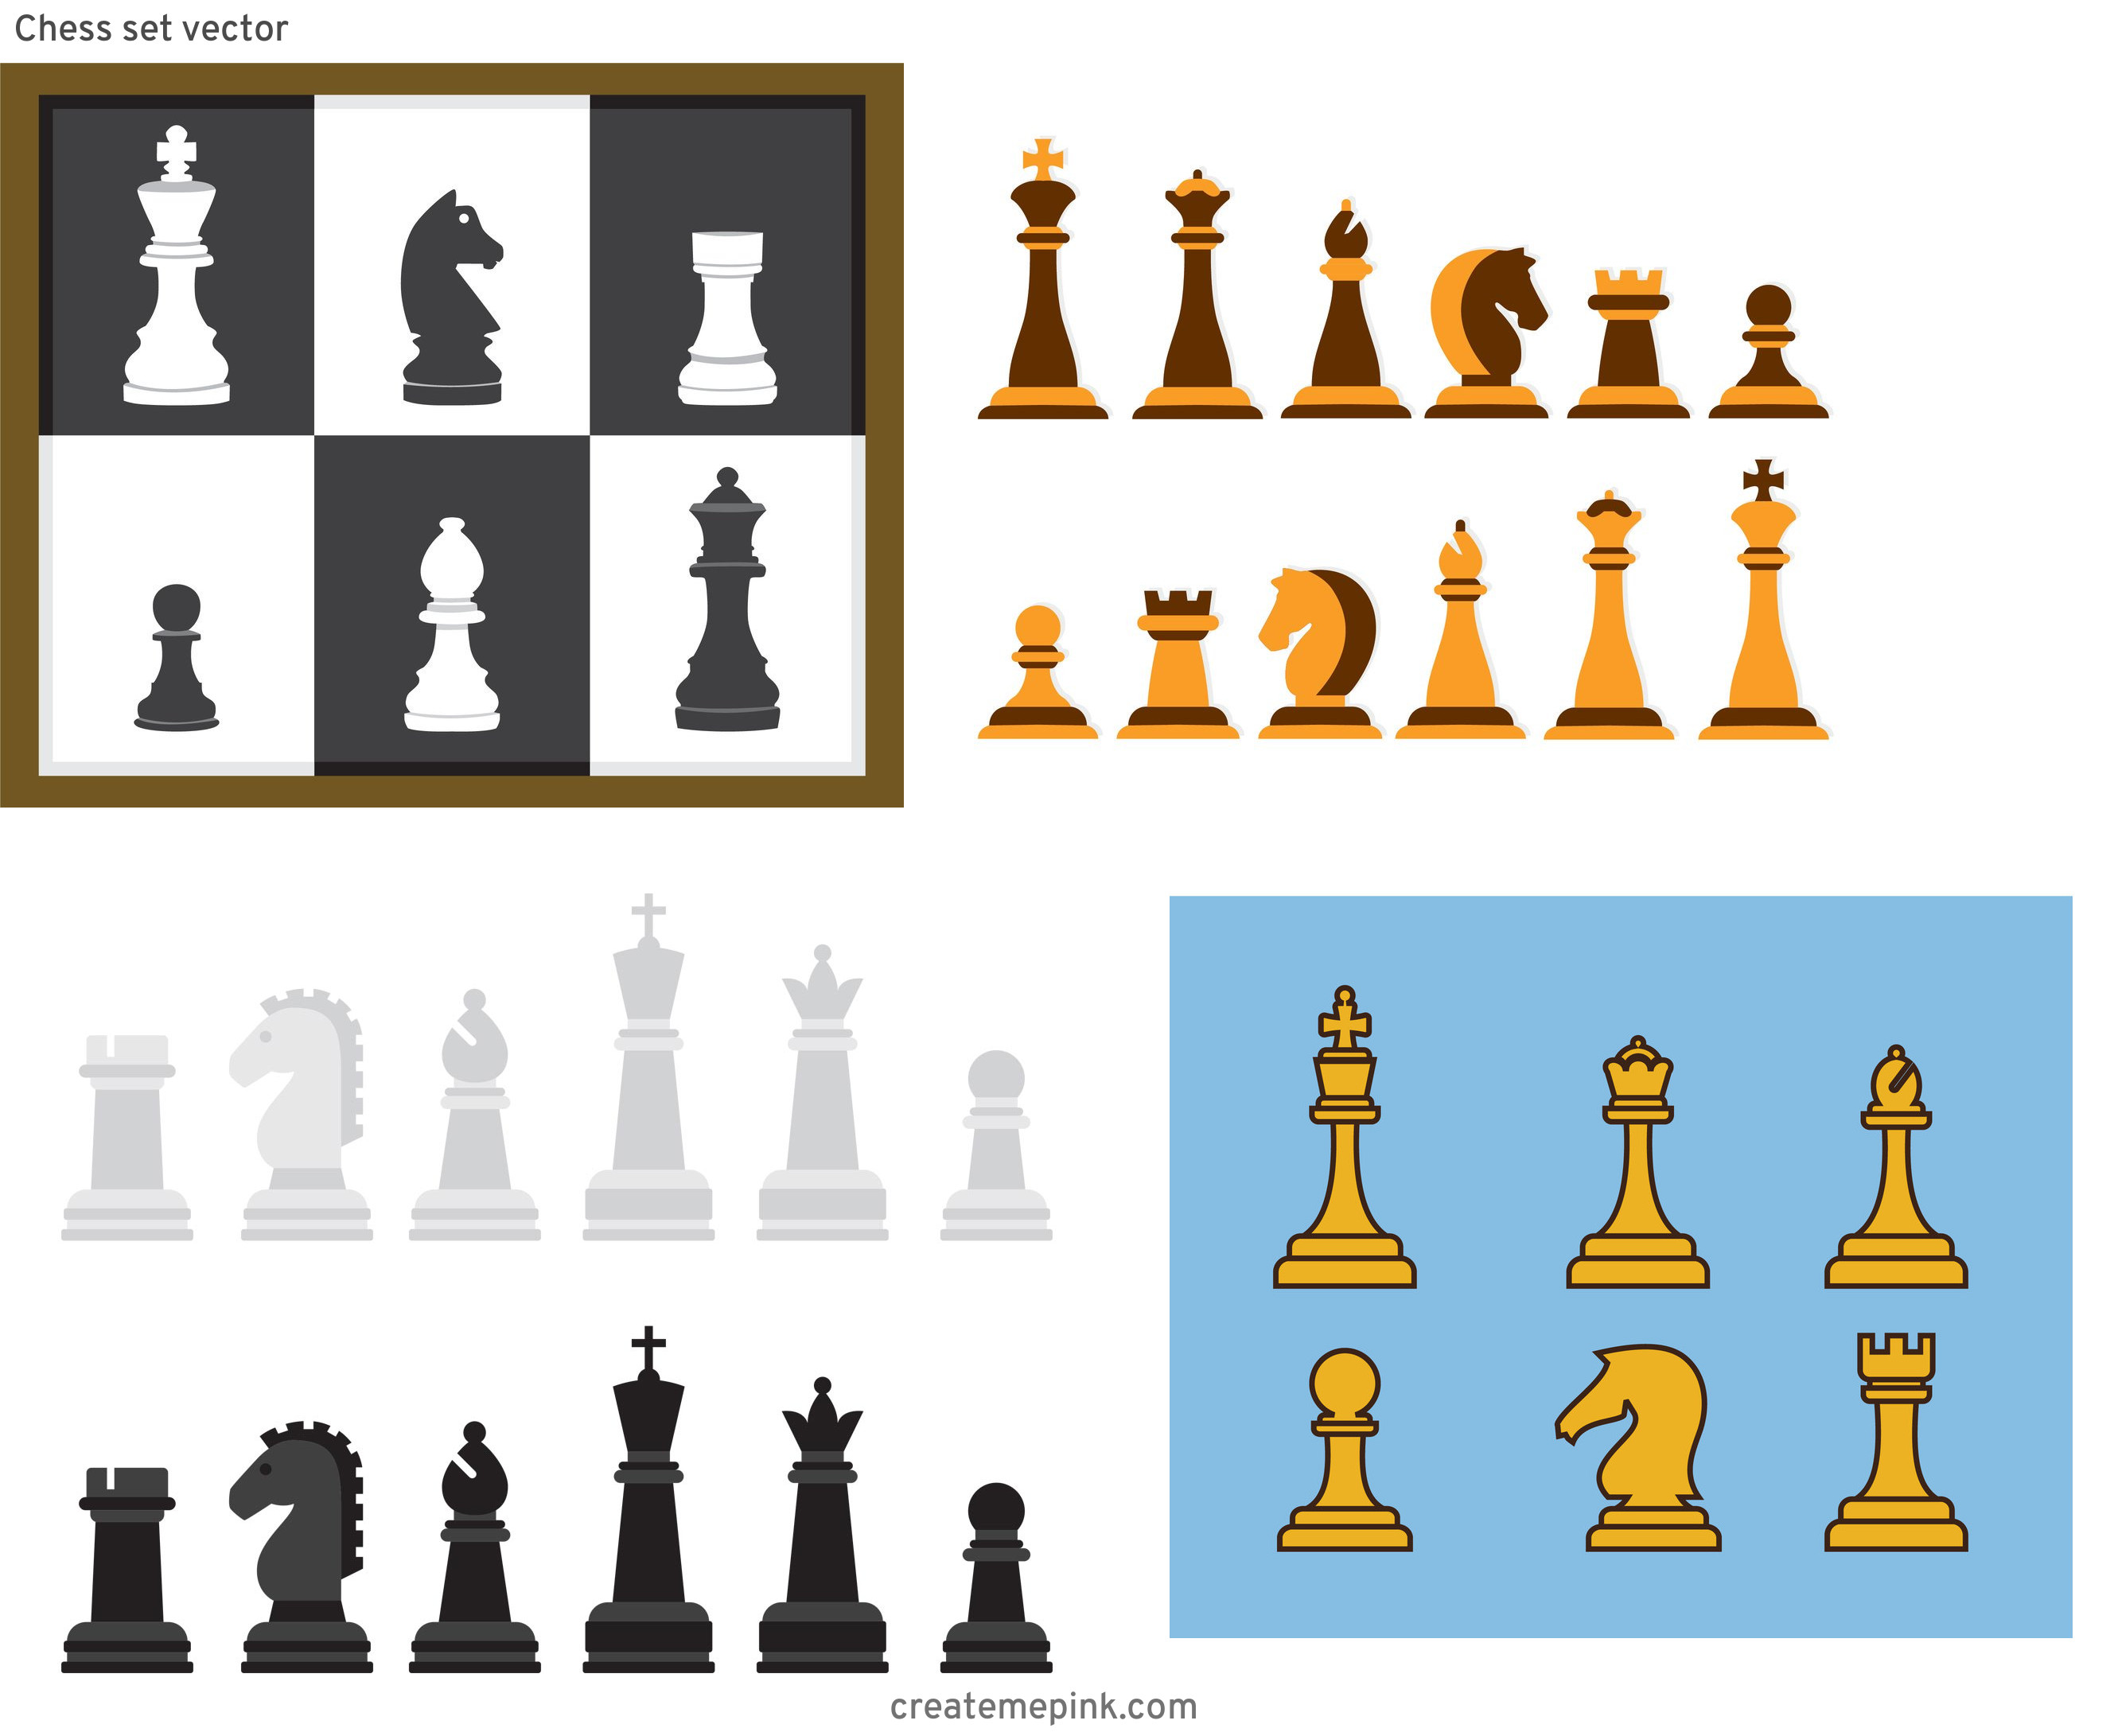 Chess Vector Graphic: Chess Set Vector